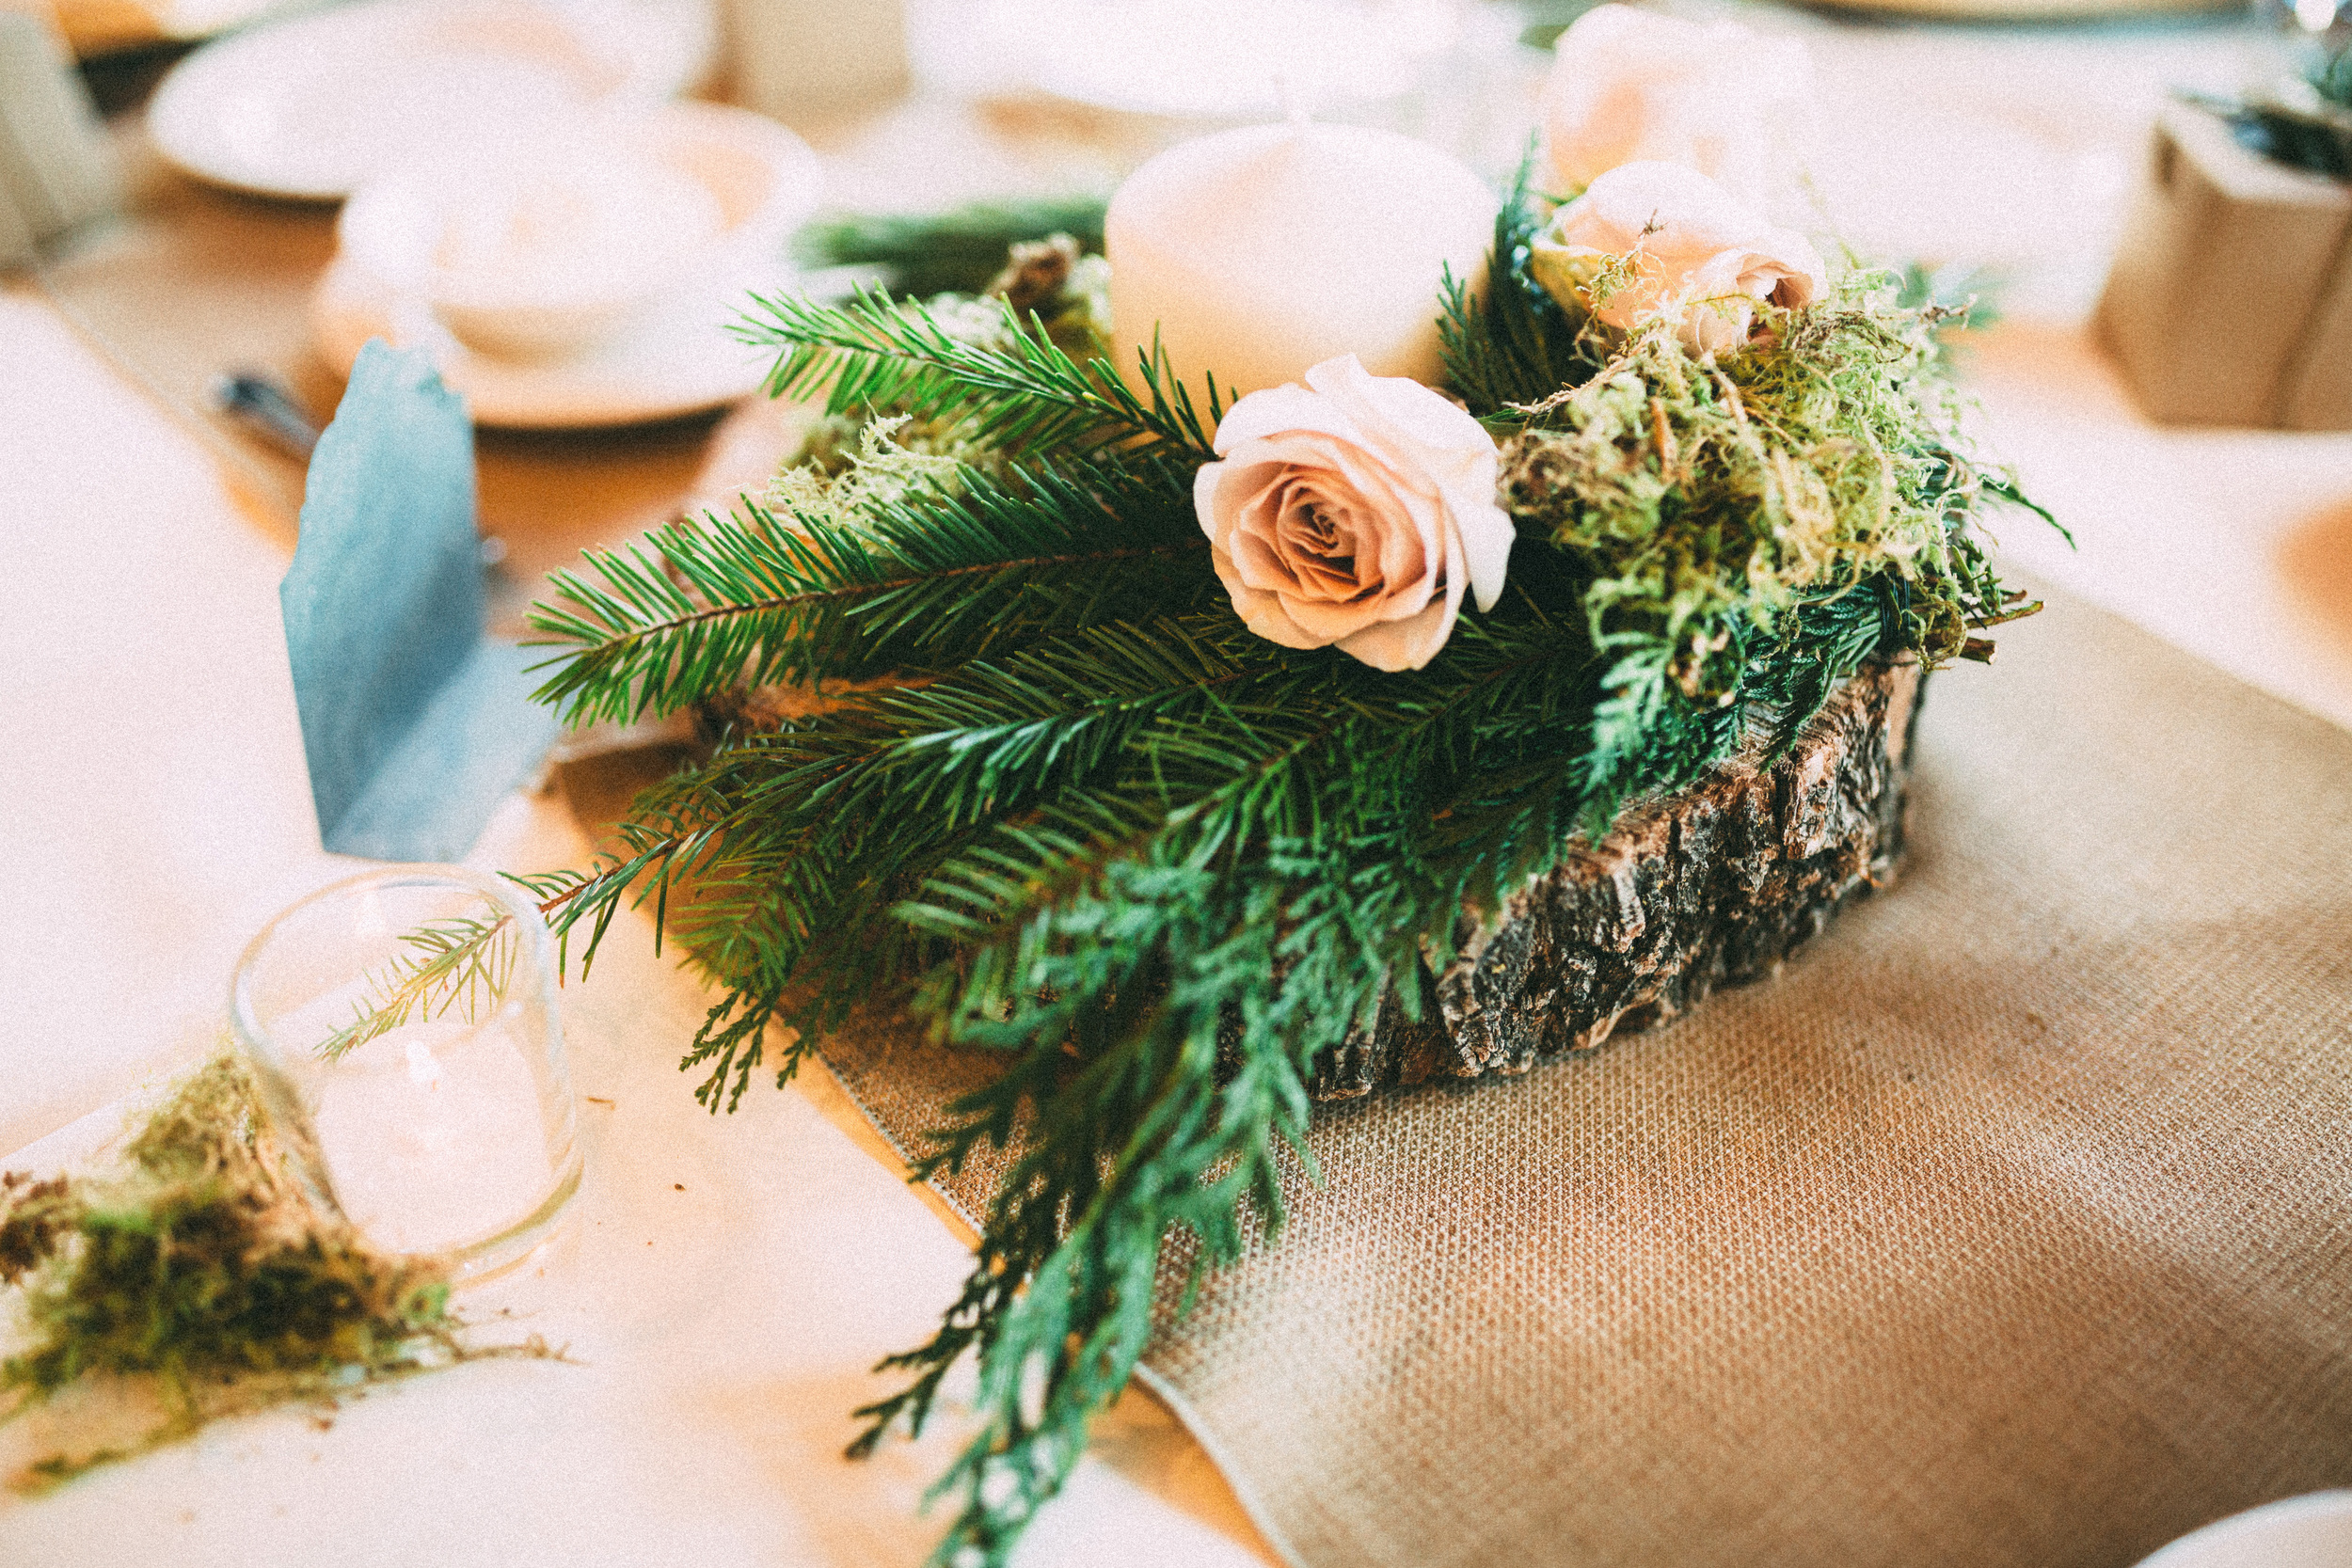 chic-winter-wedding-tips-michael-russo-witney-carson-dwts-celebrity-event-planning-ideas